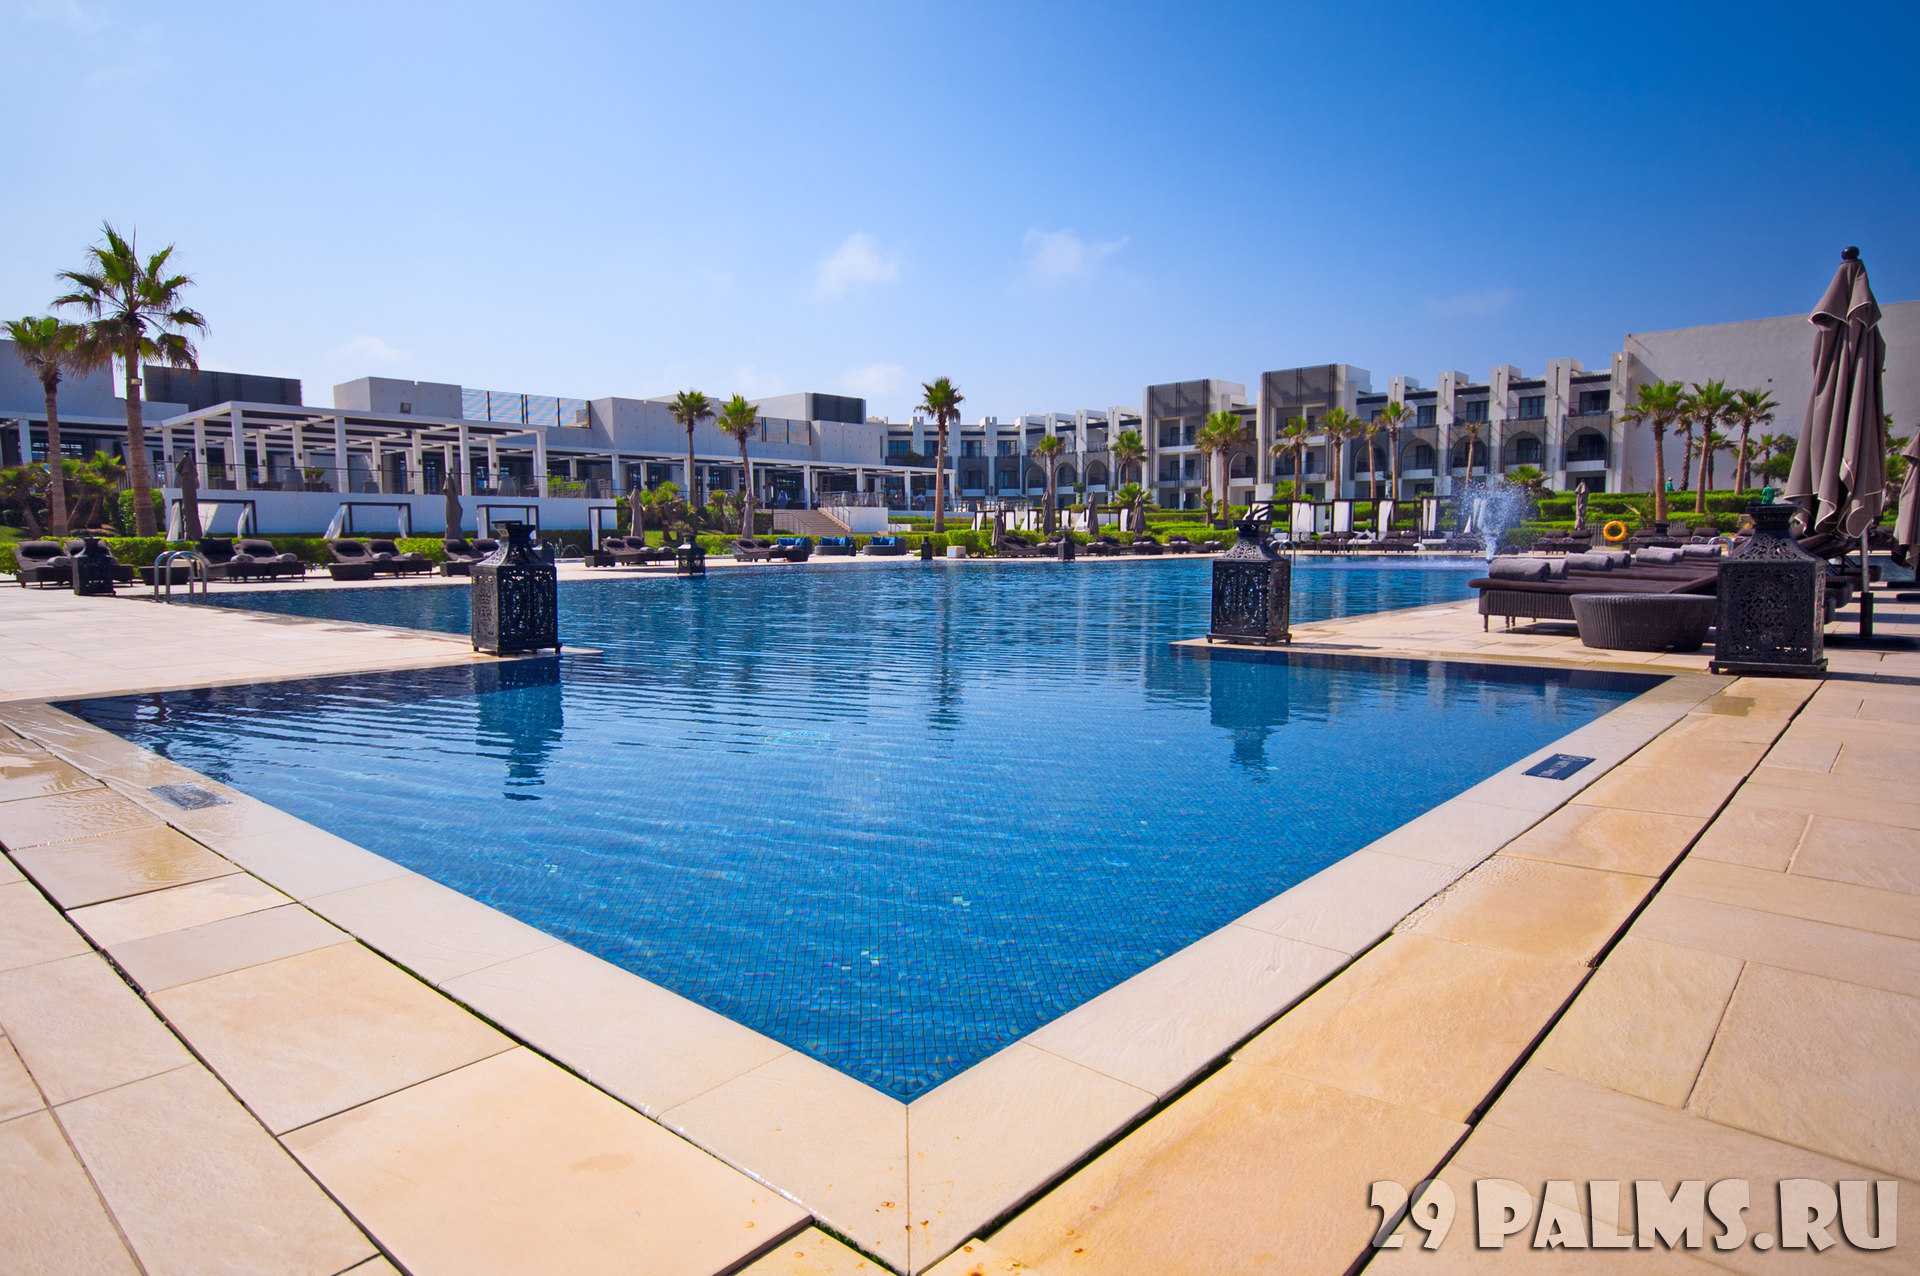 Клуб путешествий Павла Аксенова. Марокко. Агадир. Sofitel Agadir Thalassa Sea and Spa. Overview